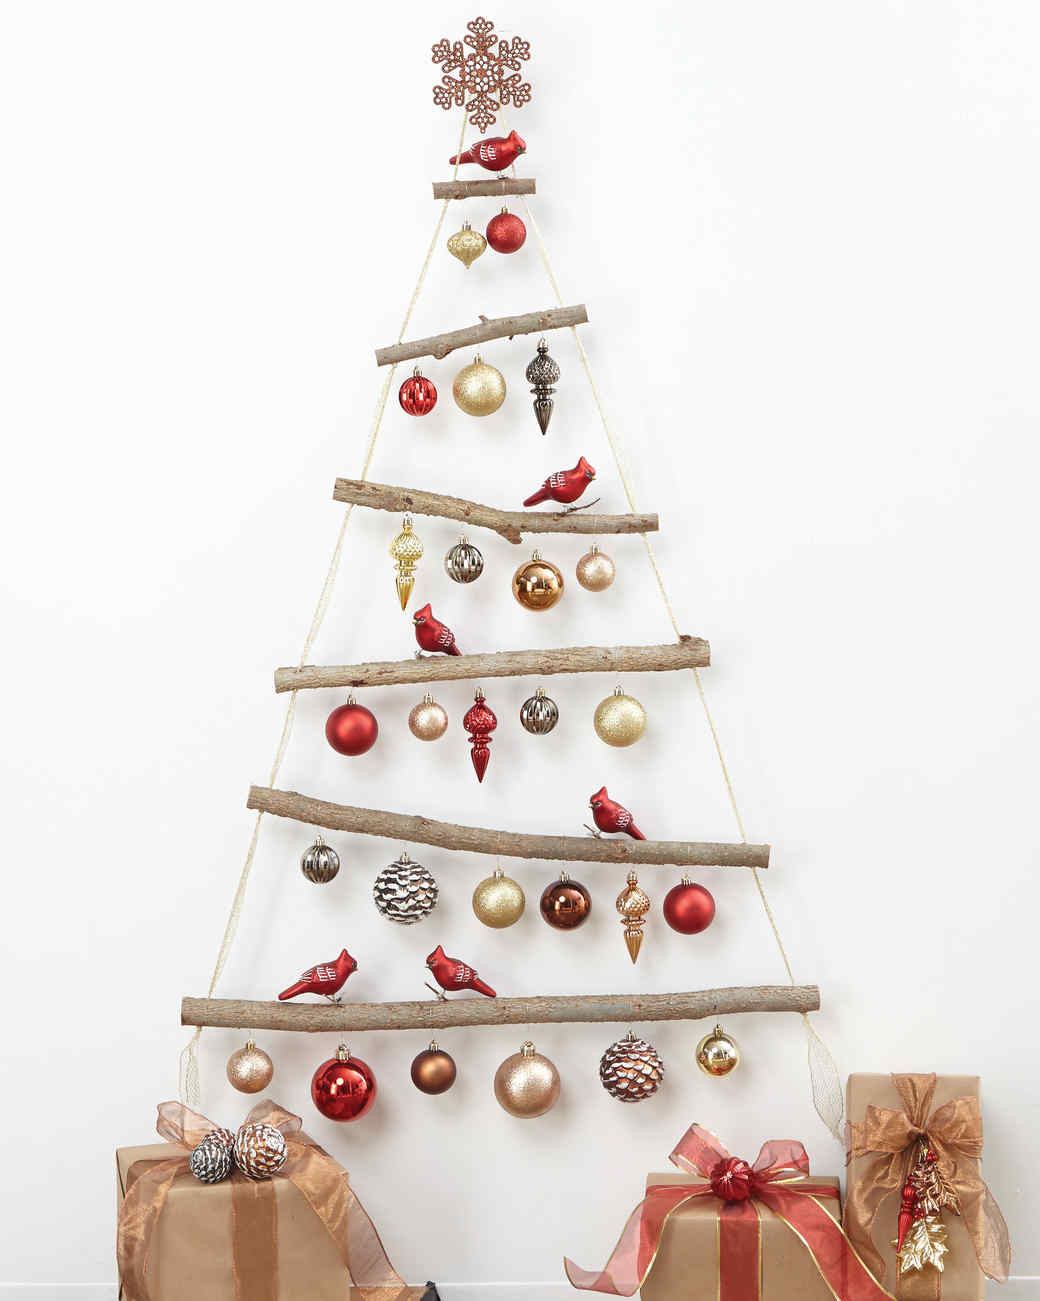 Best ideas about DIY Christmas Tree . Save or Pin DIY Christmas Tree How to Make the Ornaments the Now.